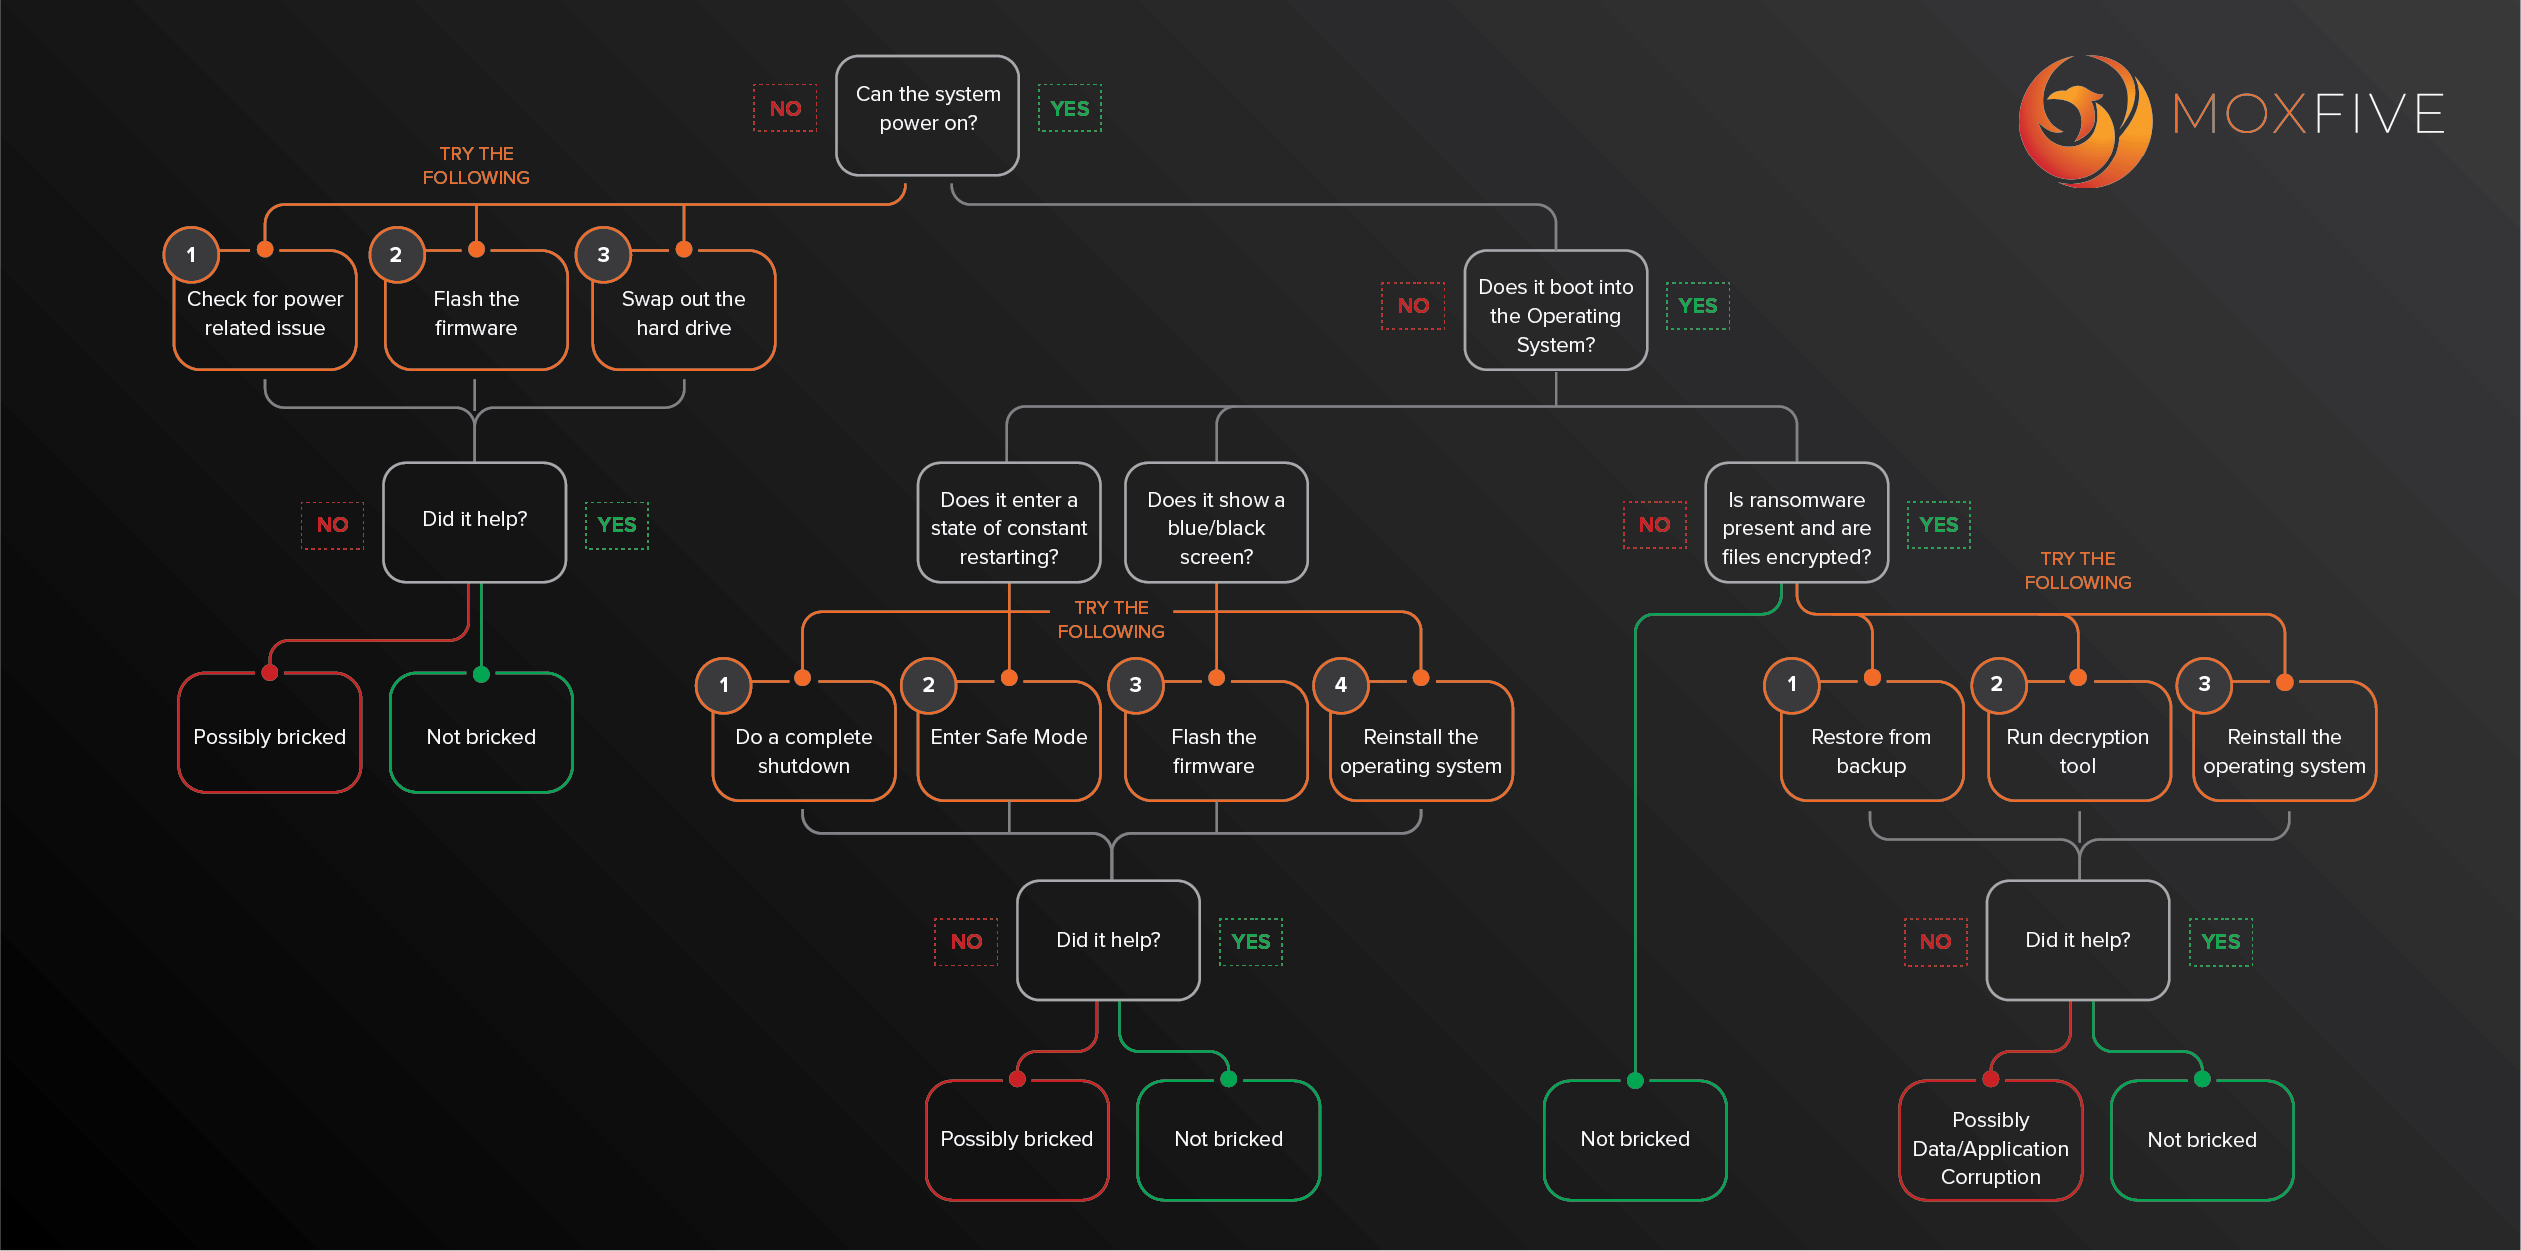 Determining if your system may be bricked flow chart